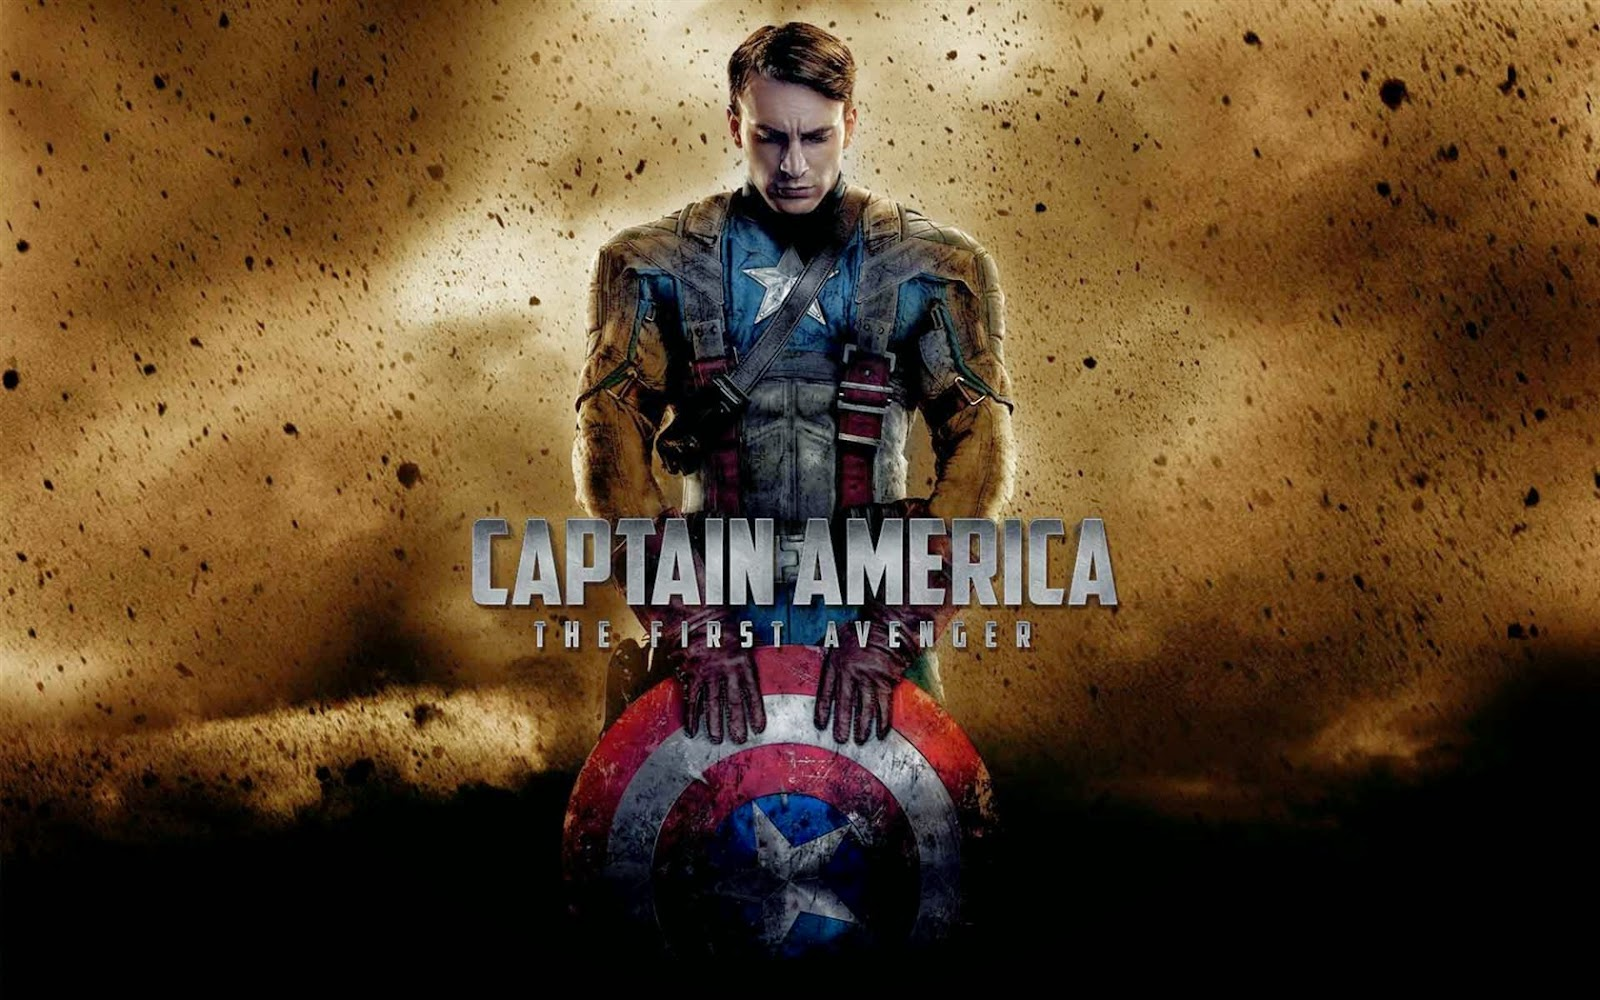 Wallpapers captain america the first avenger hd fondos - Captain america hd images download ...